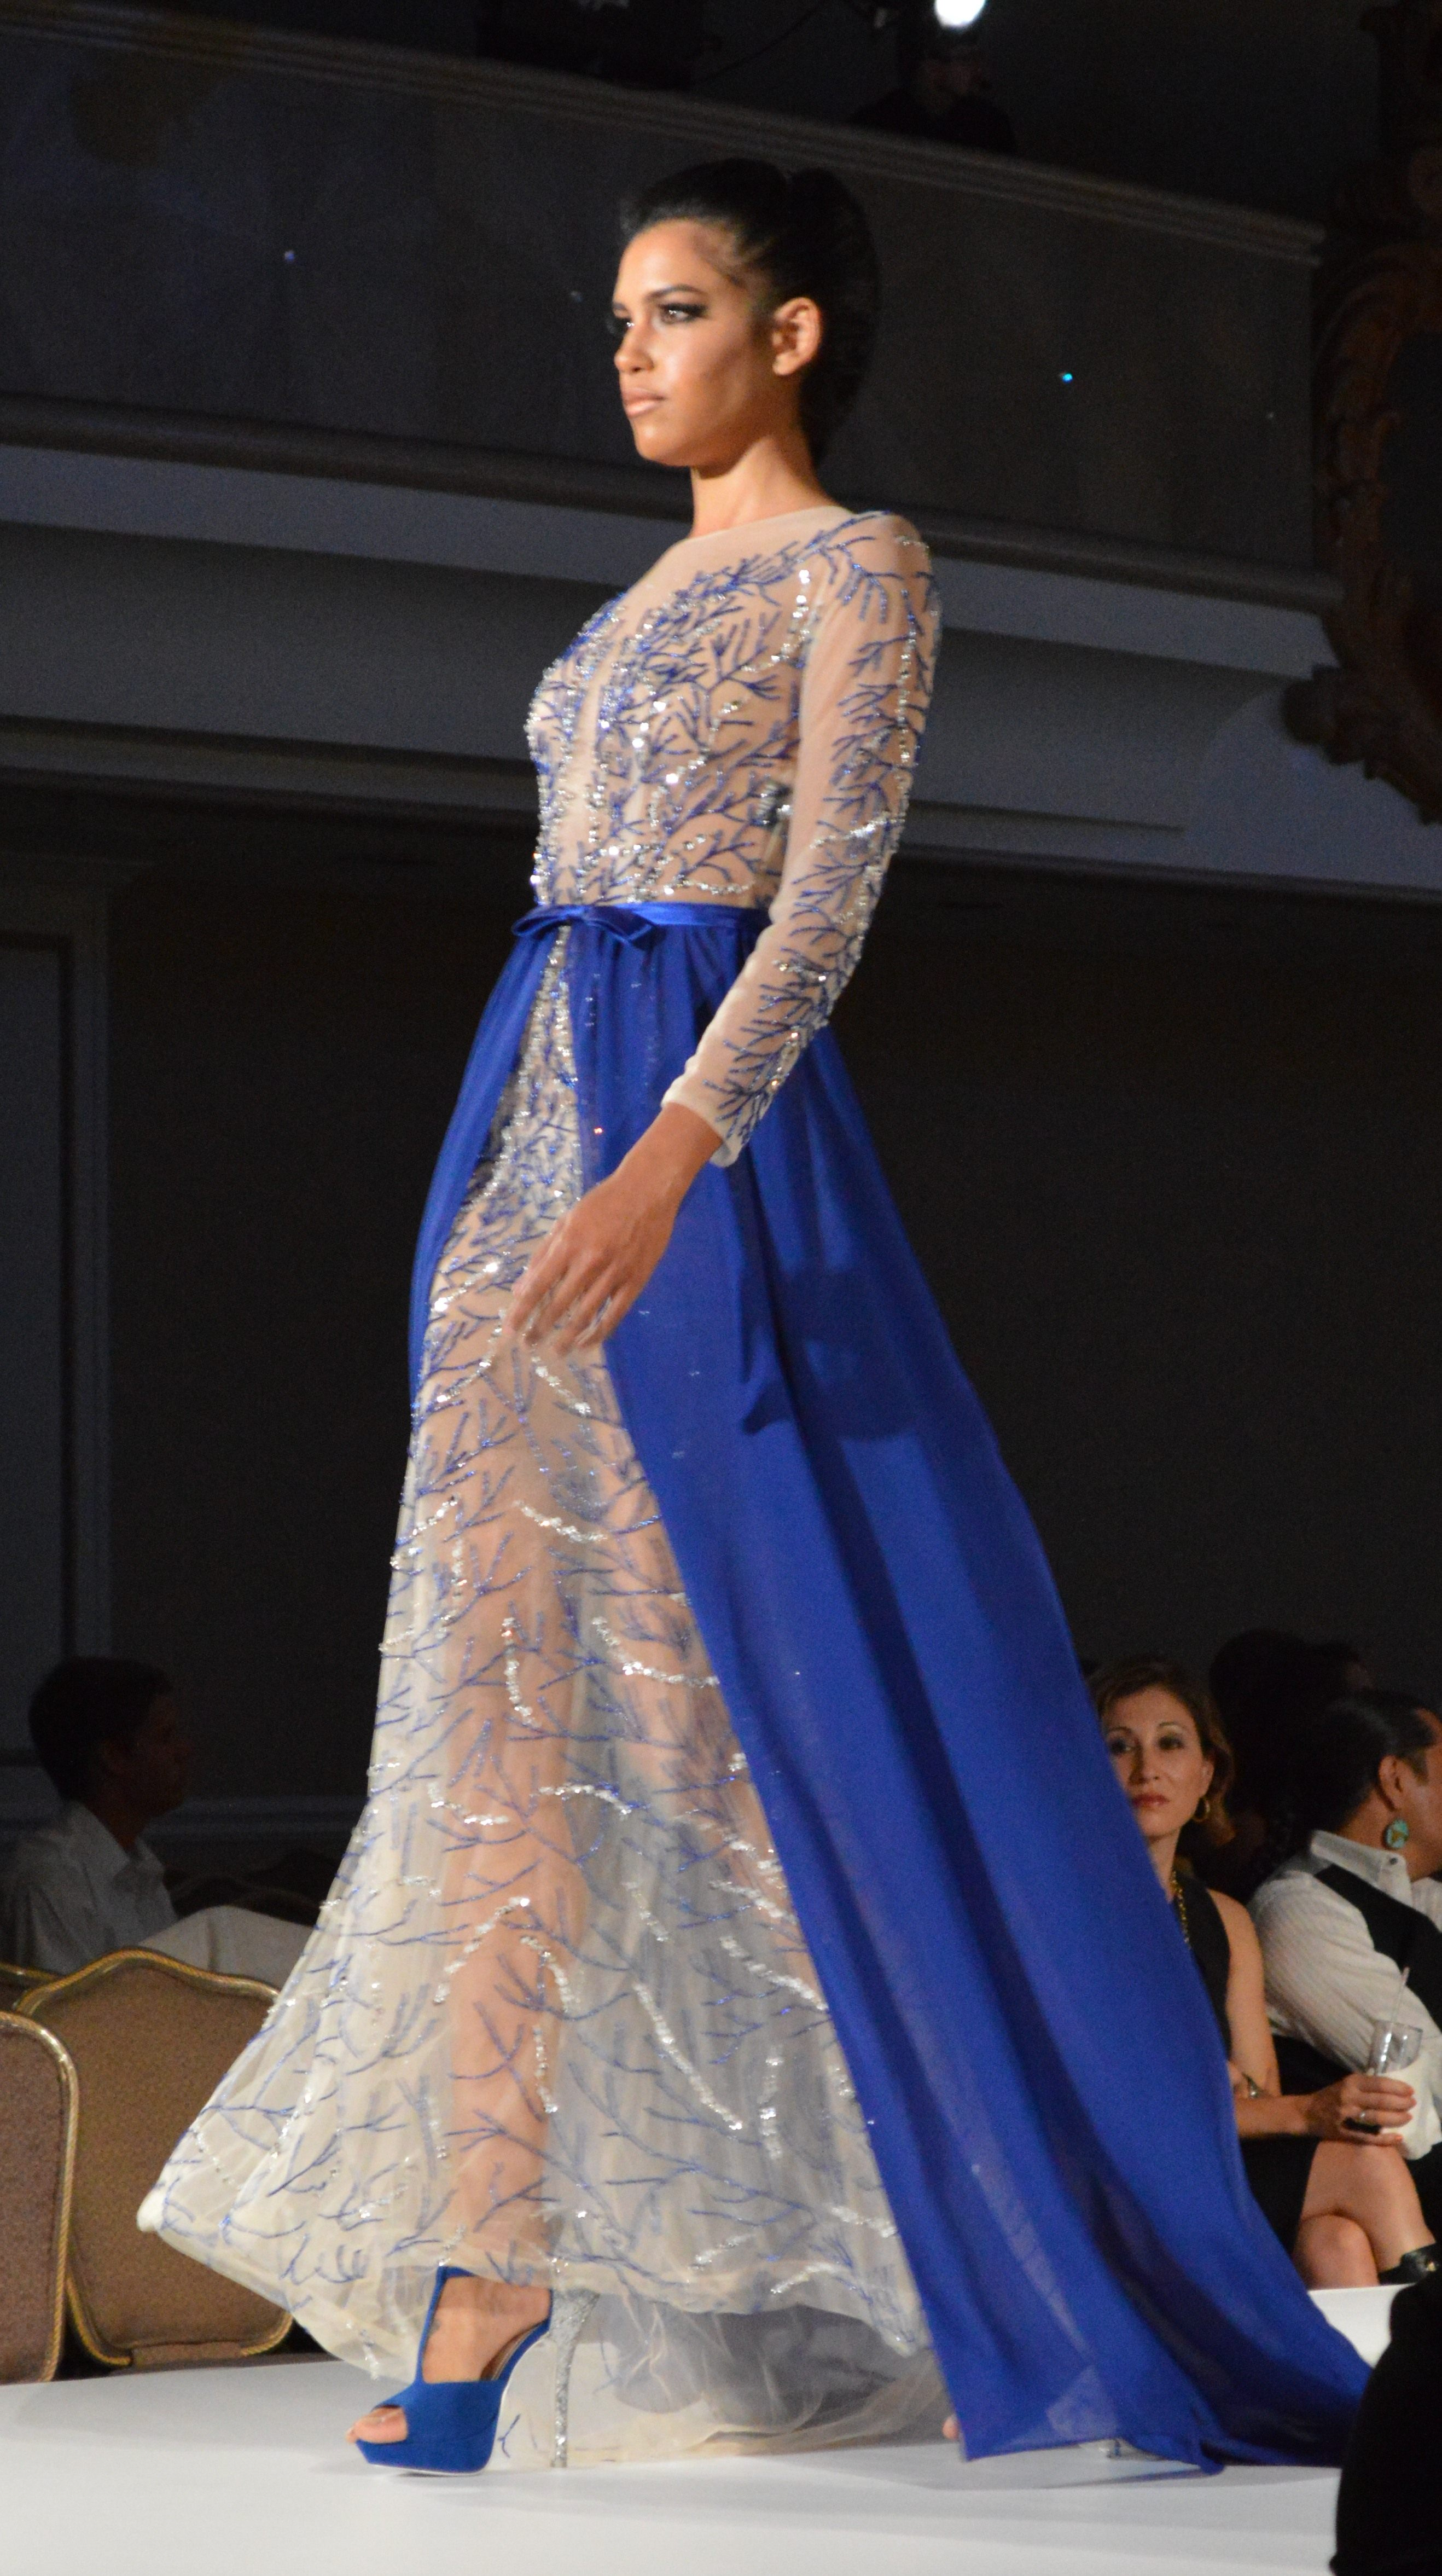 The First Parisian Haute Couture Show In San Francisco